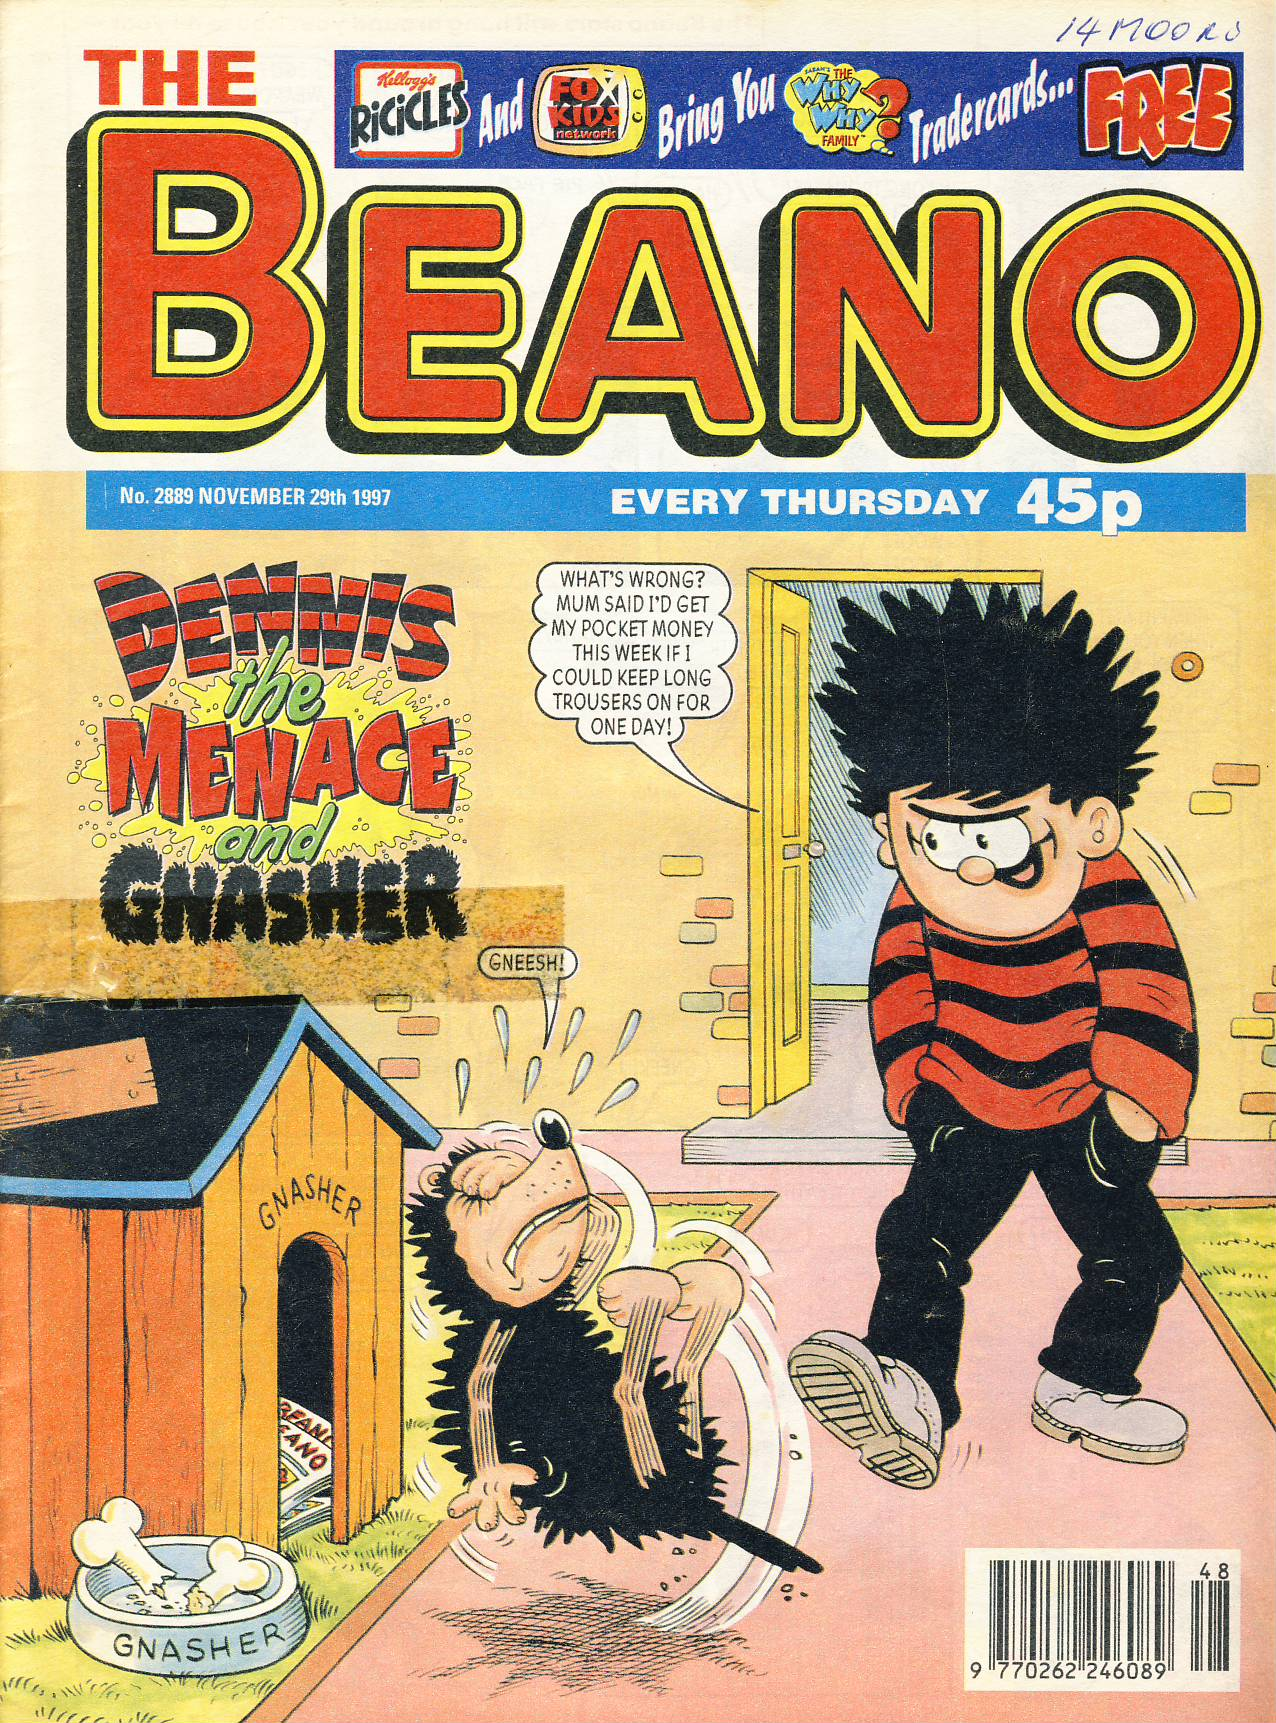 1997 November 29th BEANO vintage comic Good Gift Christmas Present Birthday Anniversary ref296a pre-owned item in good read condition.